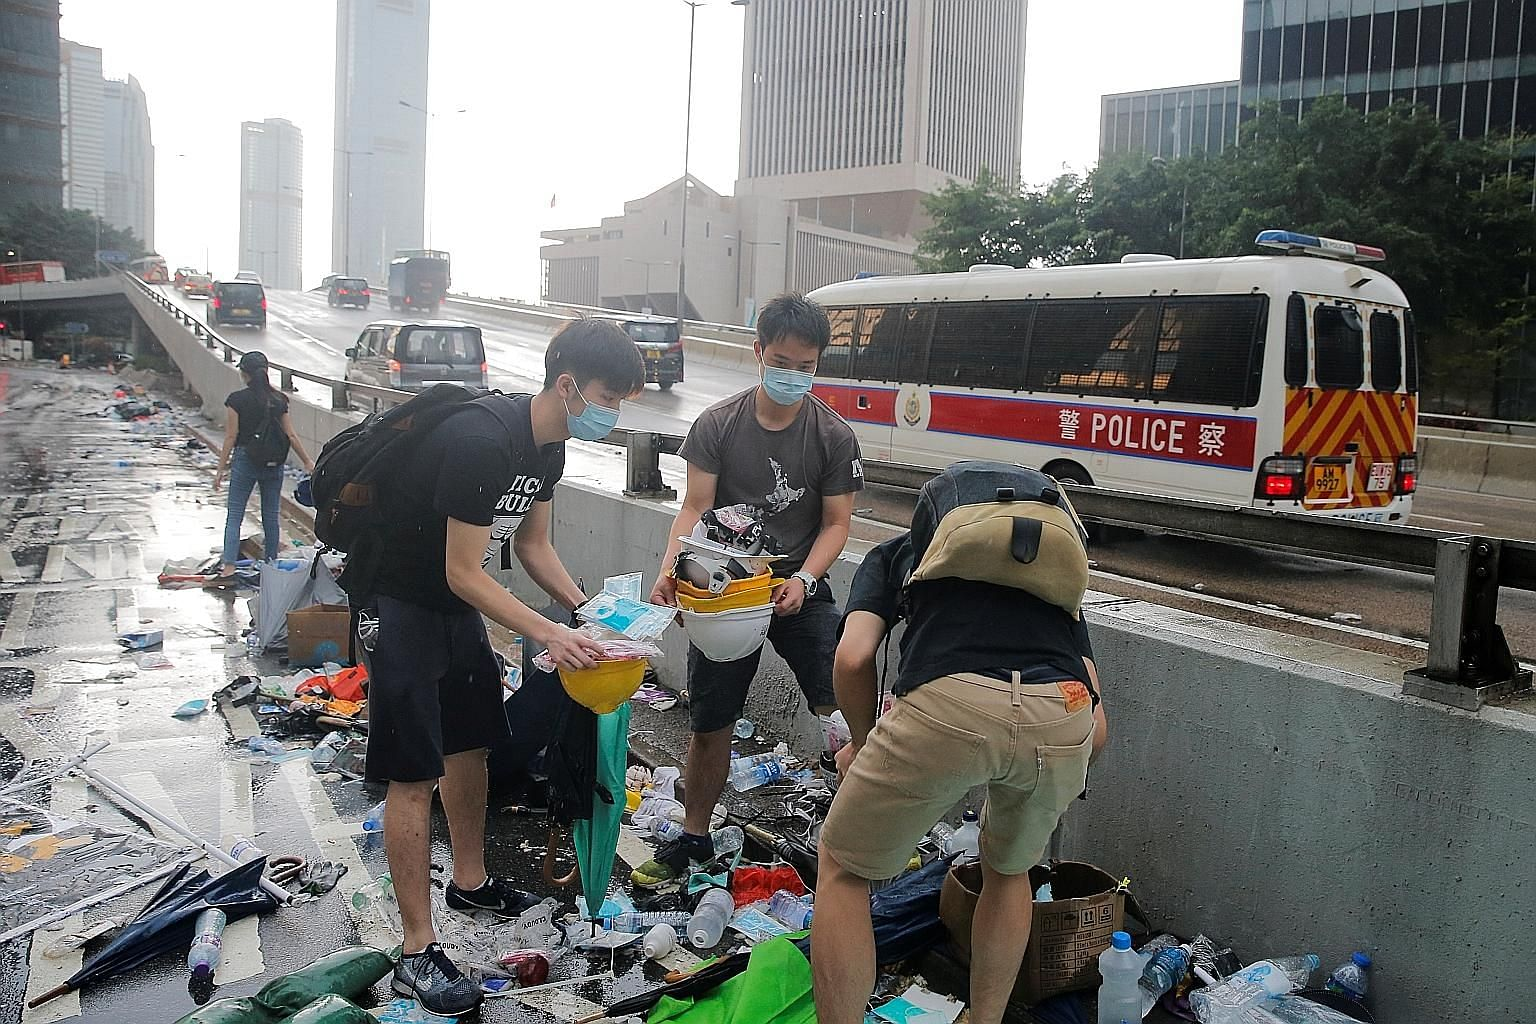 People picking out helmets, umbrellas and other items left behind by protesters in Hong Kong yesterday. Chinese state media blamed Hong Kong's opposition camp and foreign elements for inciting lawlessness. PHOTO: REUTERS